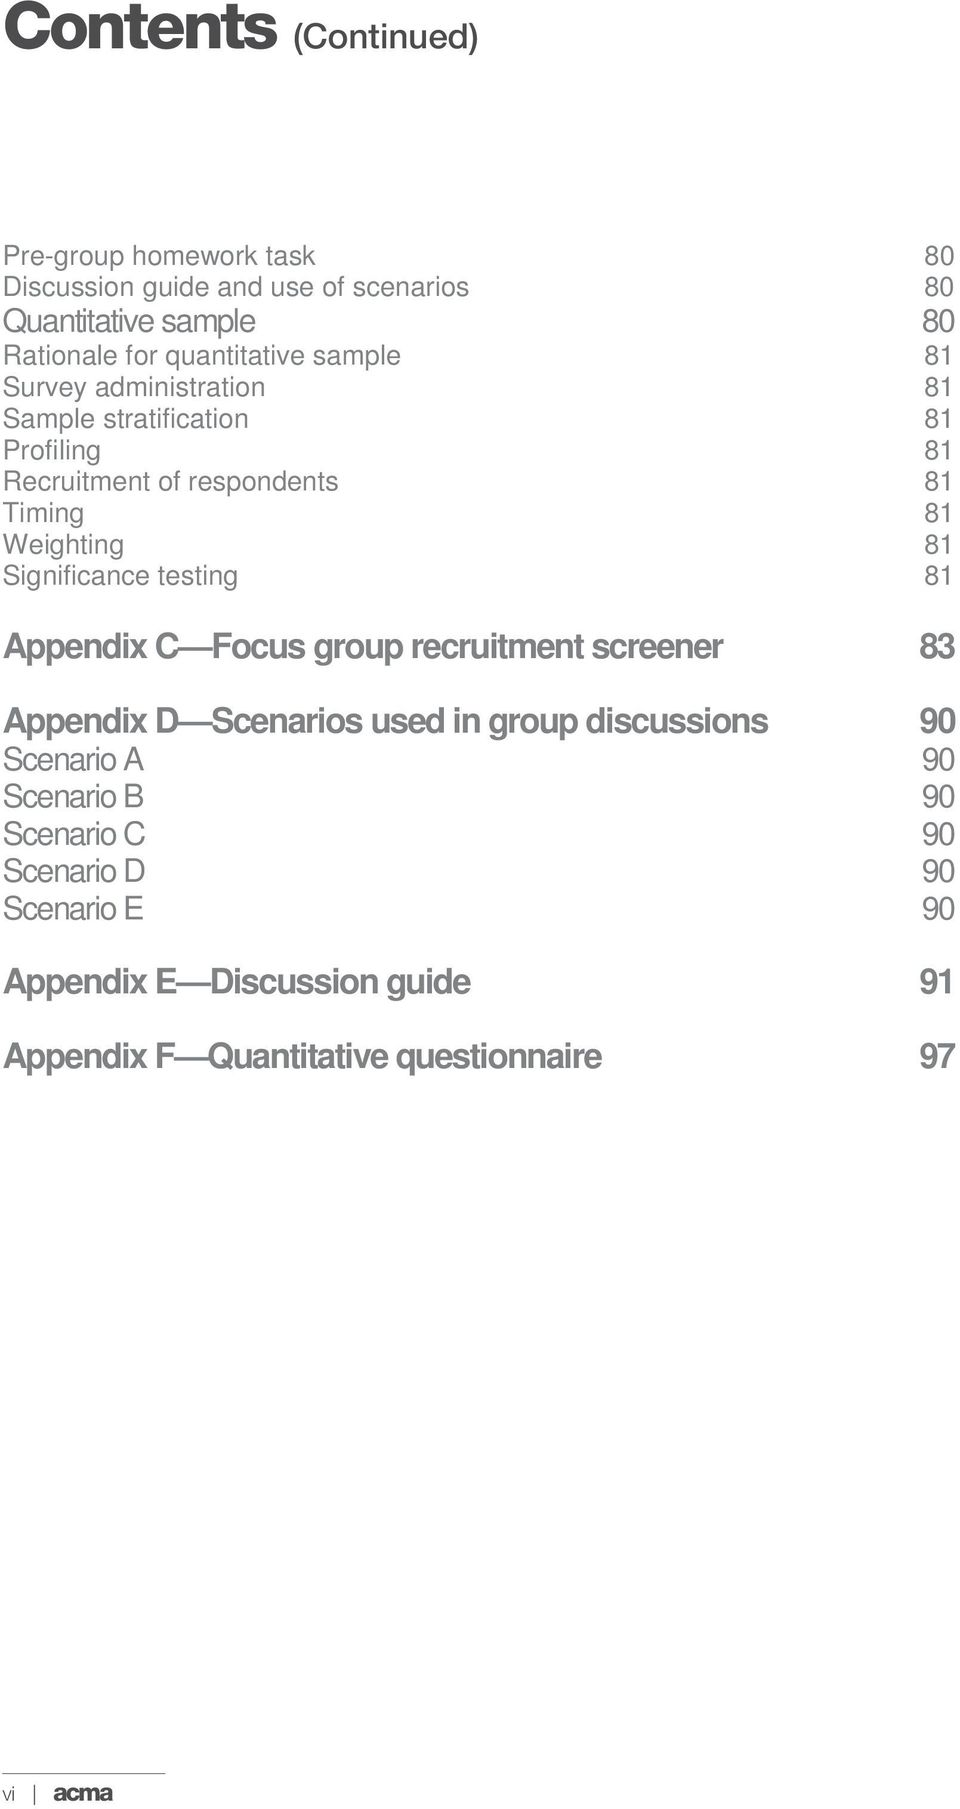 Weighting 81 Significance testing 81 Appendix C Focus group recruitment screener 83 Appendix D Scenarios used in group discussions 90